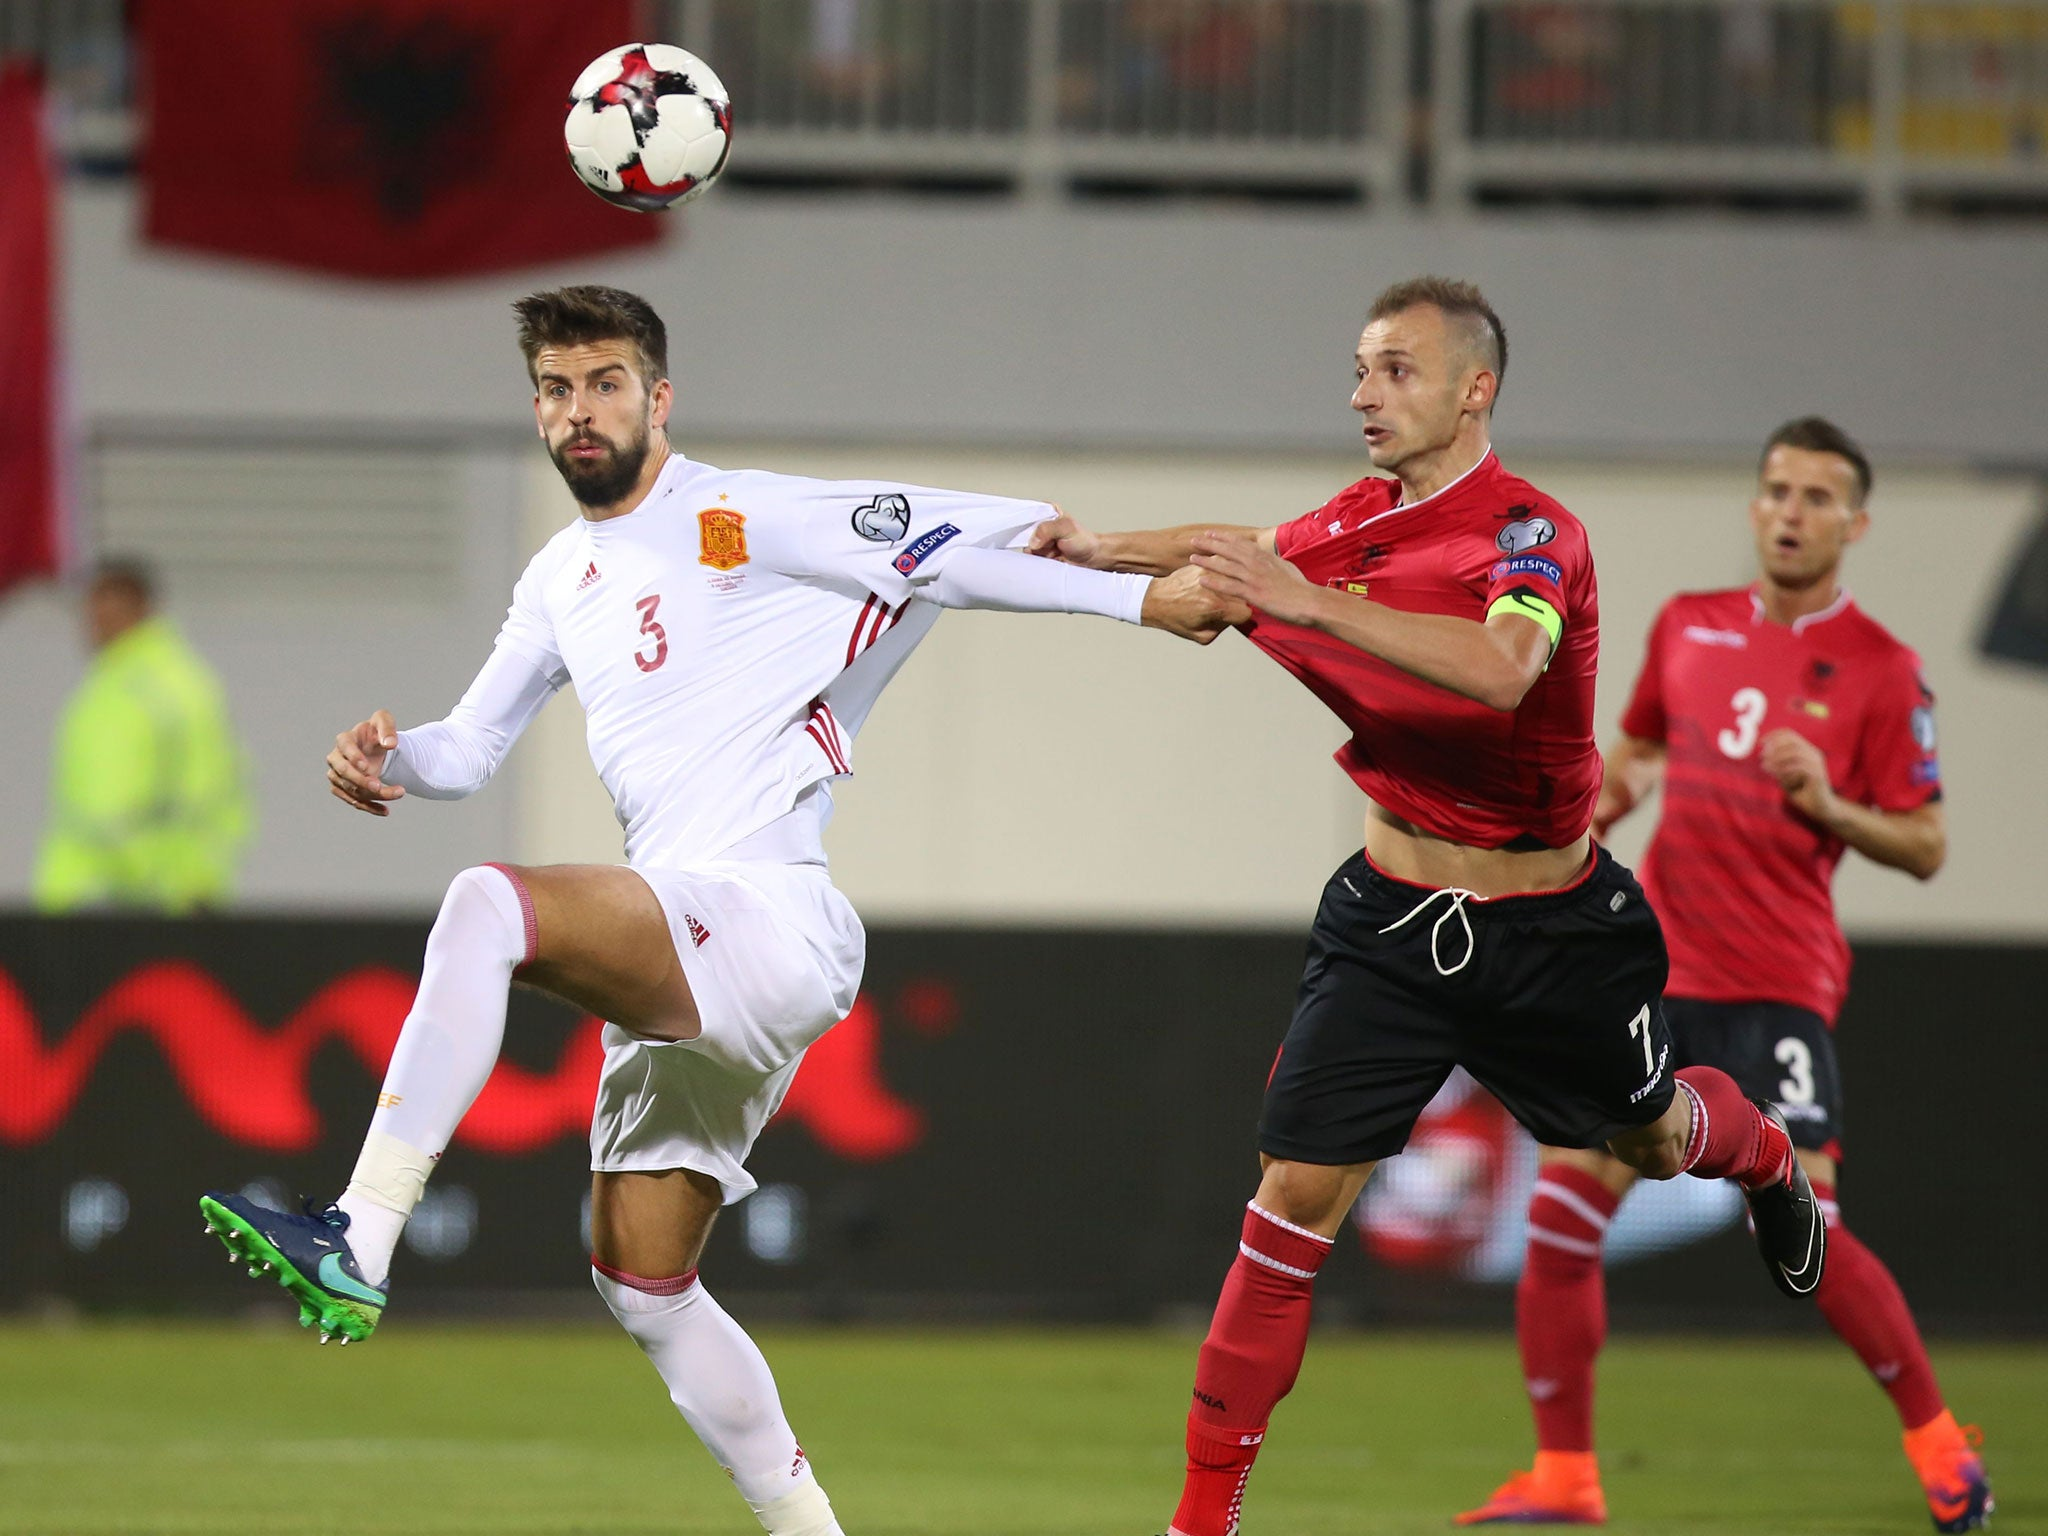 ... jersey collections - Football - Pulse Gerard Pique announces he will  retire from Spain duty after 2018 World Cup because some people 3 ... df001f7f4